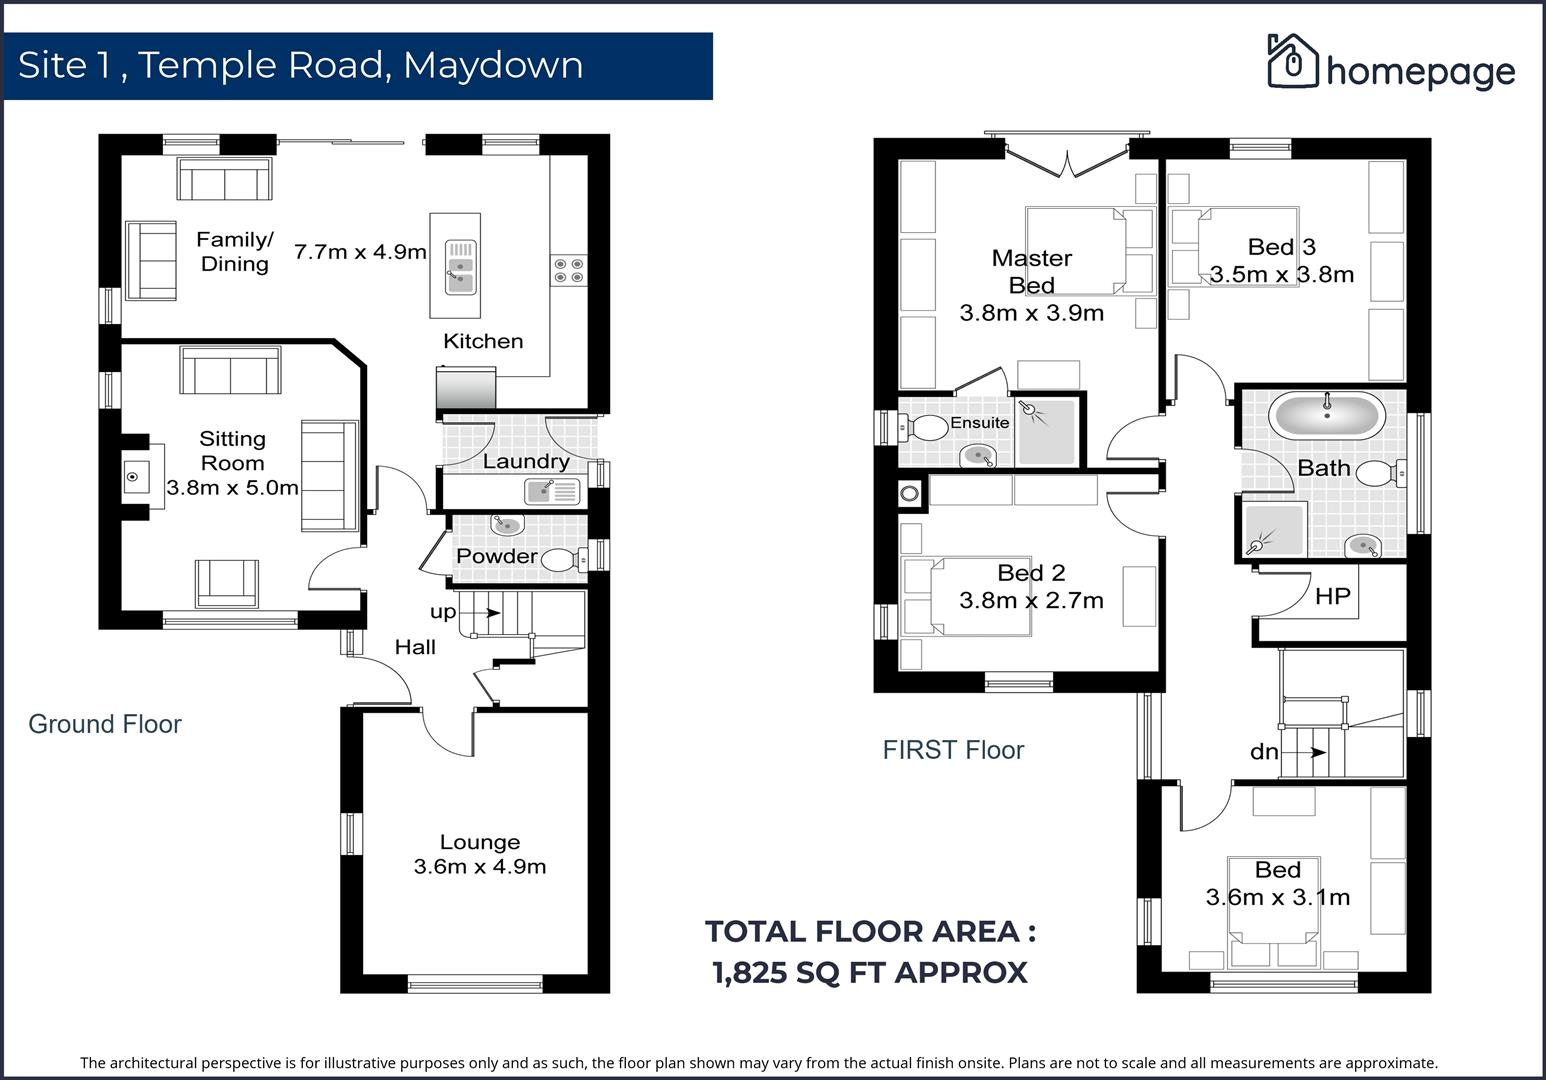 Temple Road Maydown Floor Plan 2020.jpg